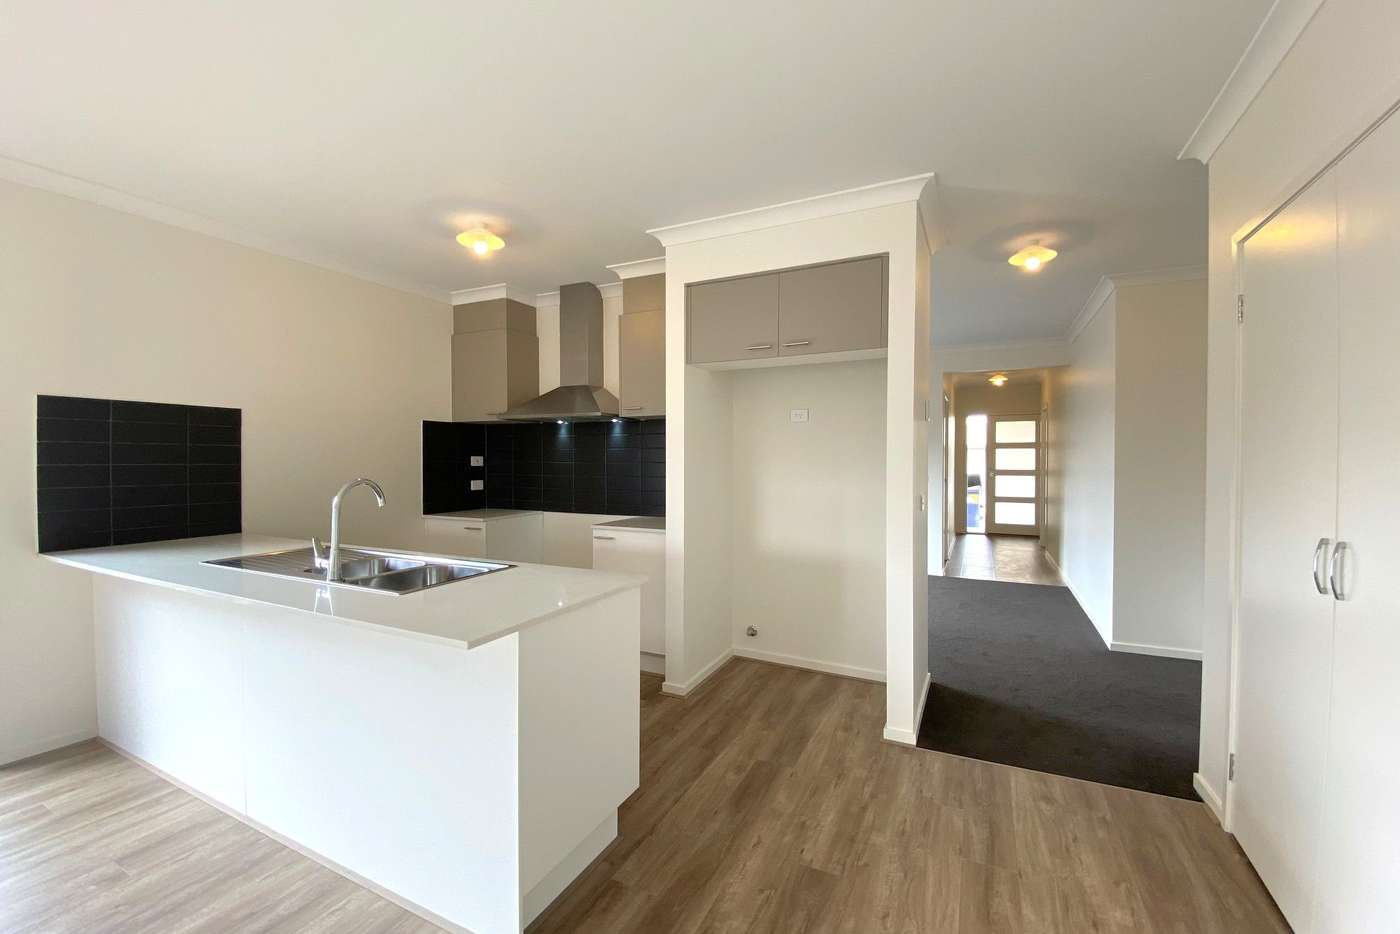 Main view of Homely house listing, 19 Laurina Street, Kalkallo VIC 3064